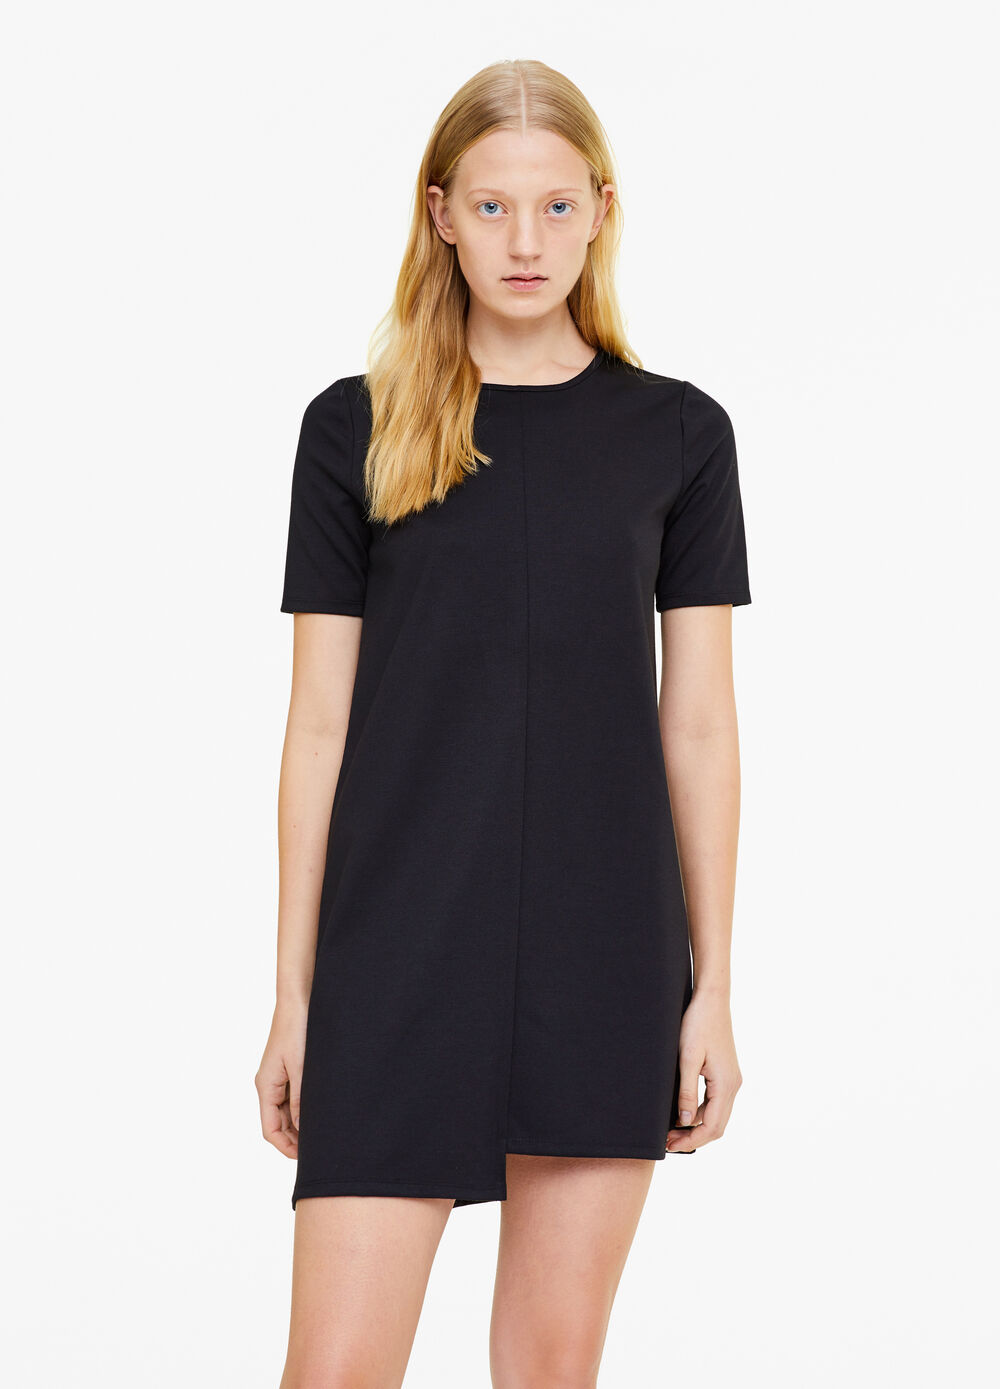 Stretch viscose blend dress with round neck